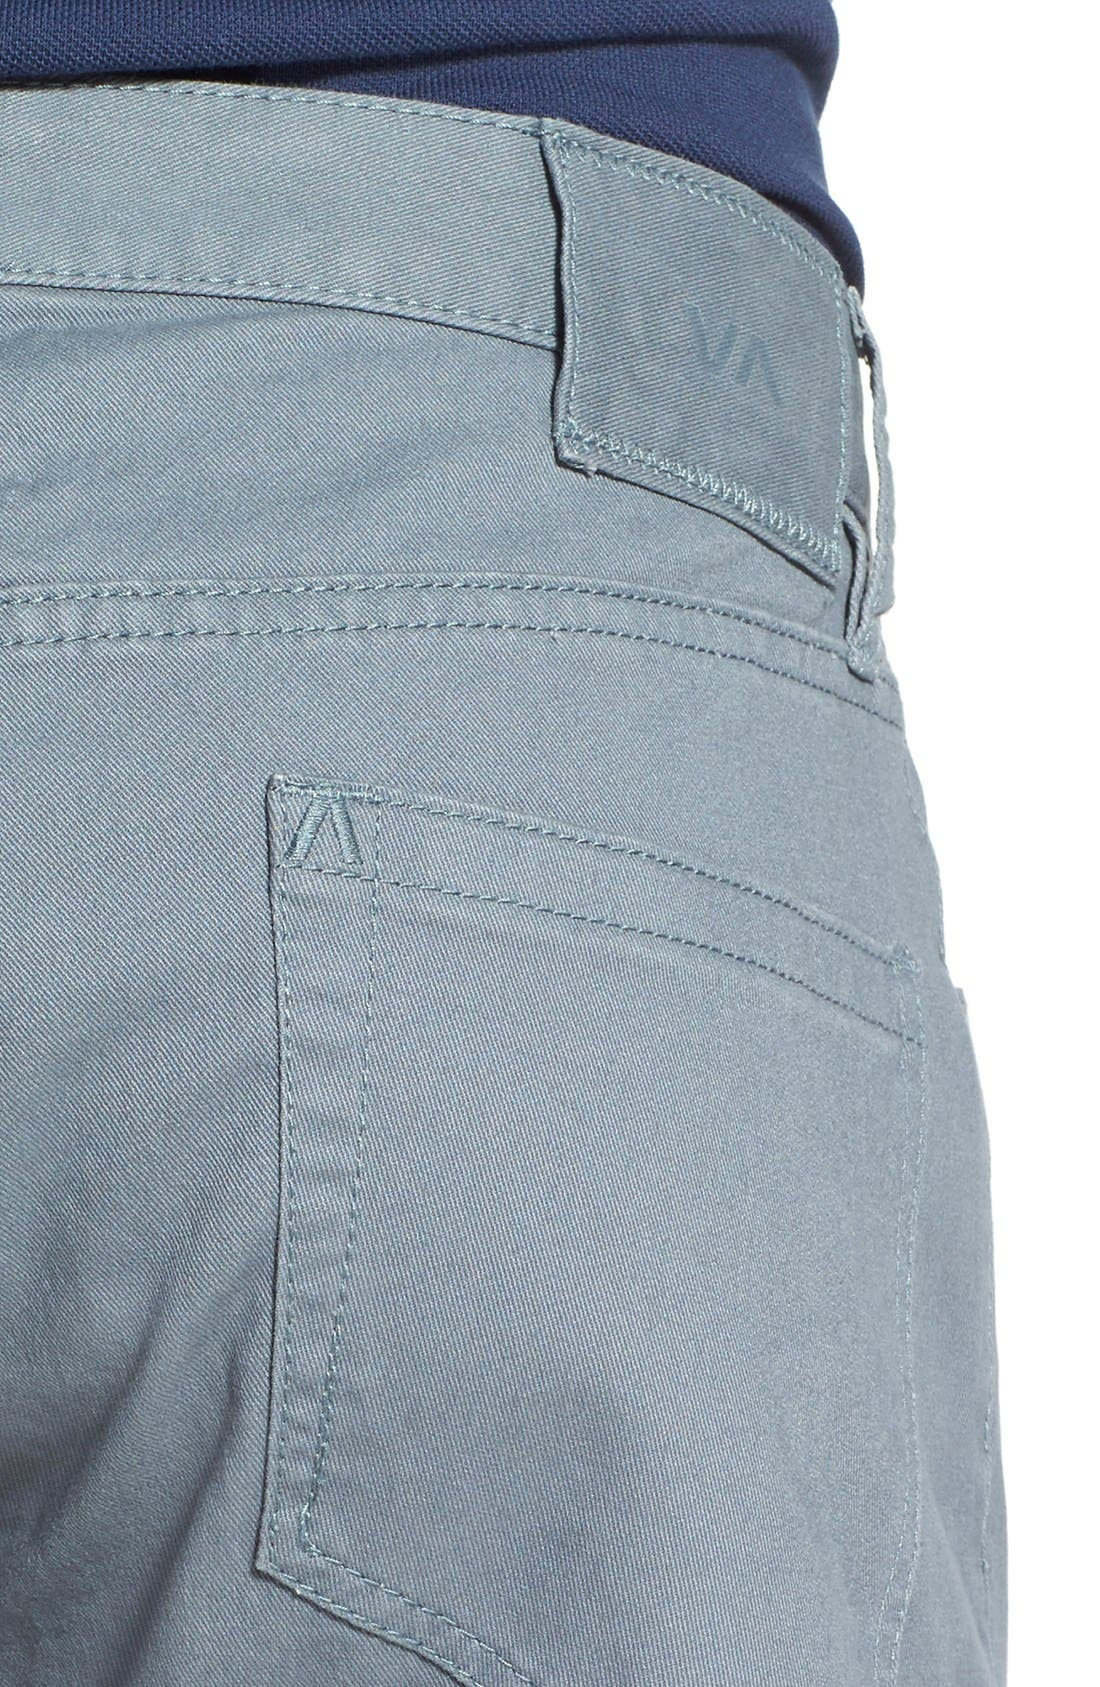 Alternate Image 4  - RVCA 'Stay RVCA' Slim Straight Pants (Online Only)